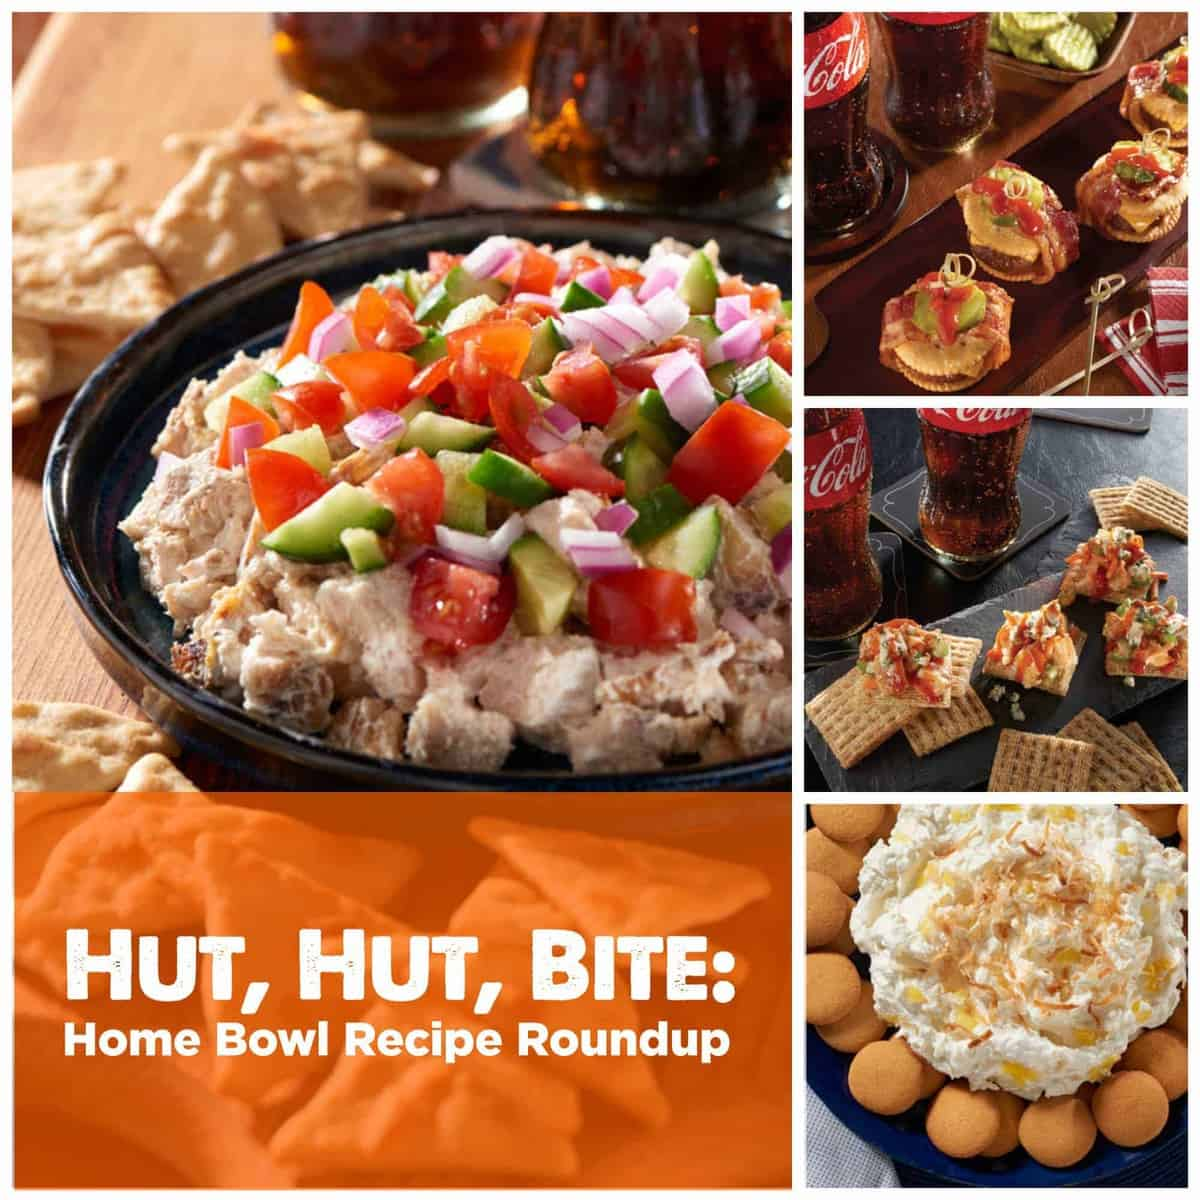 Looking for crowd-pleasing snacks for the Big Game? We've got you covered with a hand-held app, delicious dip, and even dessert! Hut, Hut, Bite!